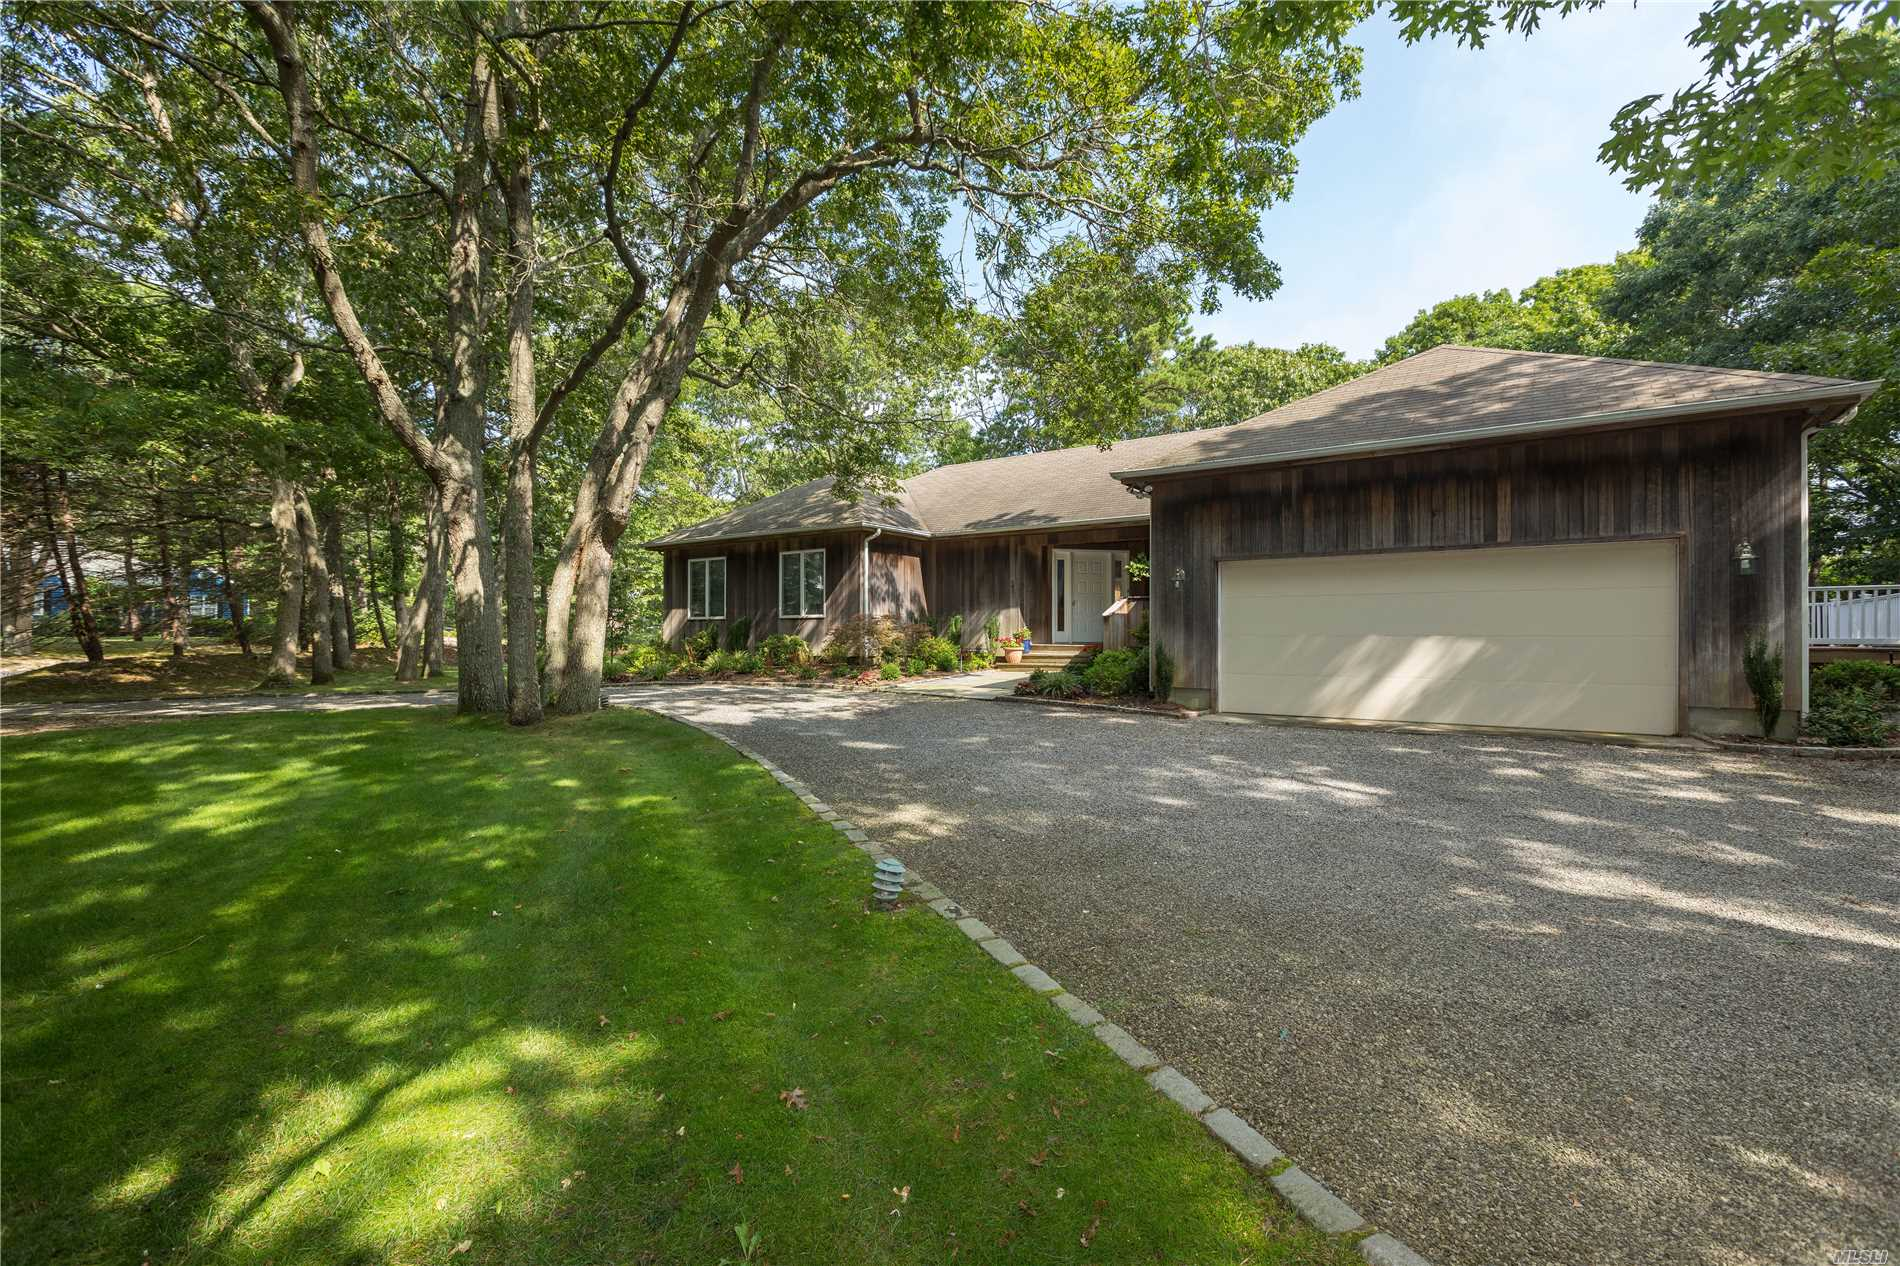 Westahmpton Beach Village Family Home With Pool. Circular Driveway, Attached Garage And Located In Beautiful Bridle Path . Private And Quiet. Very Close To Main Street With Its Theaters, Resort Shops, Marina, Cafes, Restaurants And The Gorgeous White Sandy Rogers Beach.